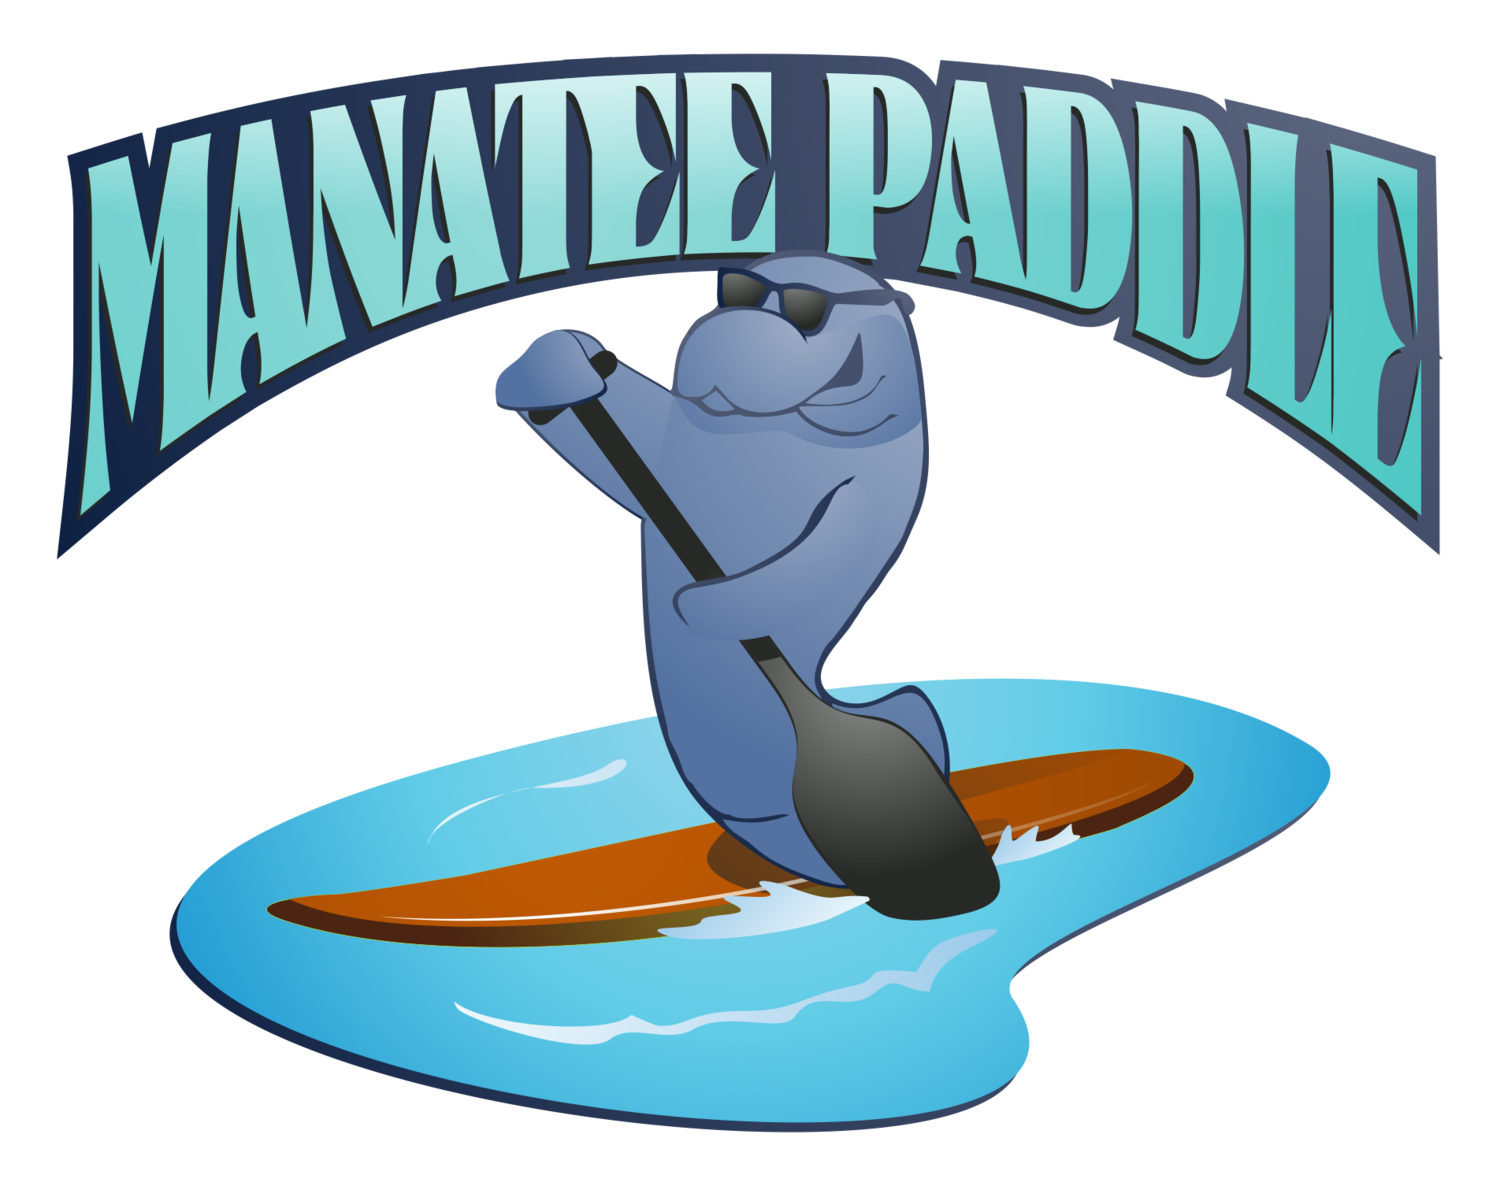 Sunglasses clipart striped. Crystal river paddleboard and